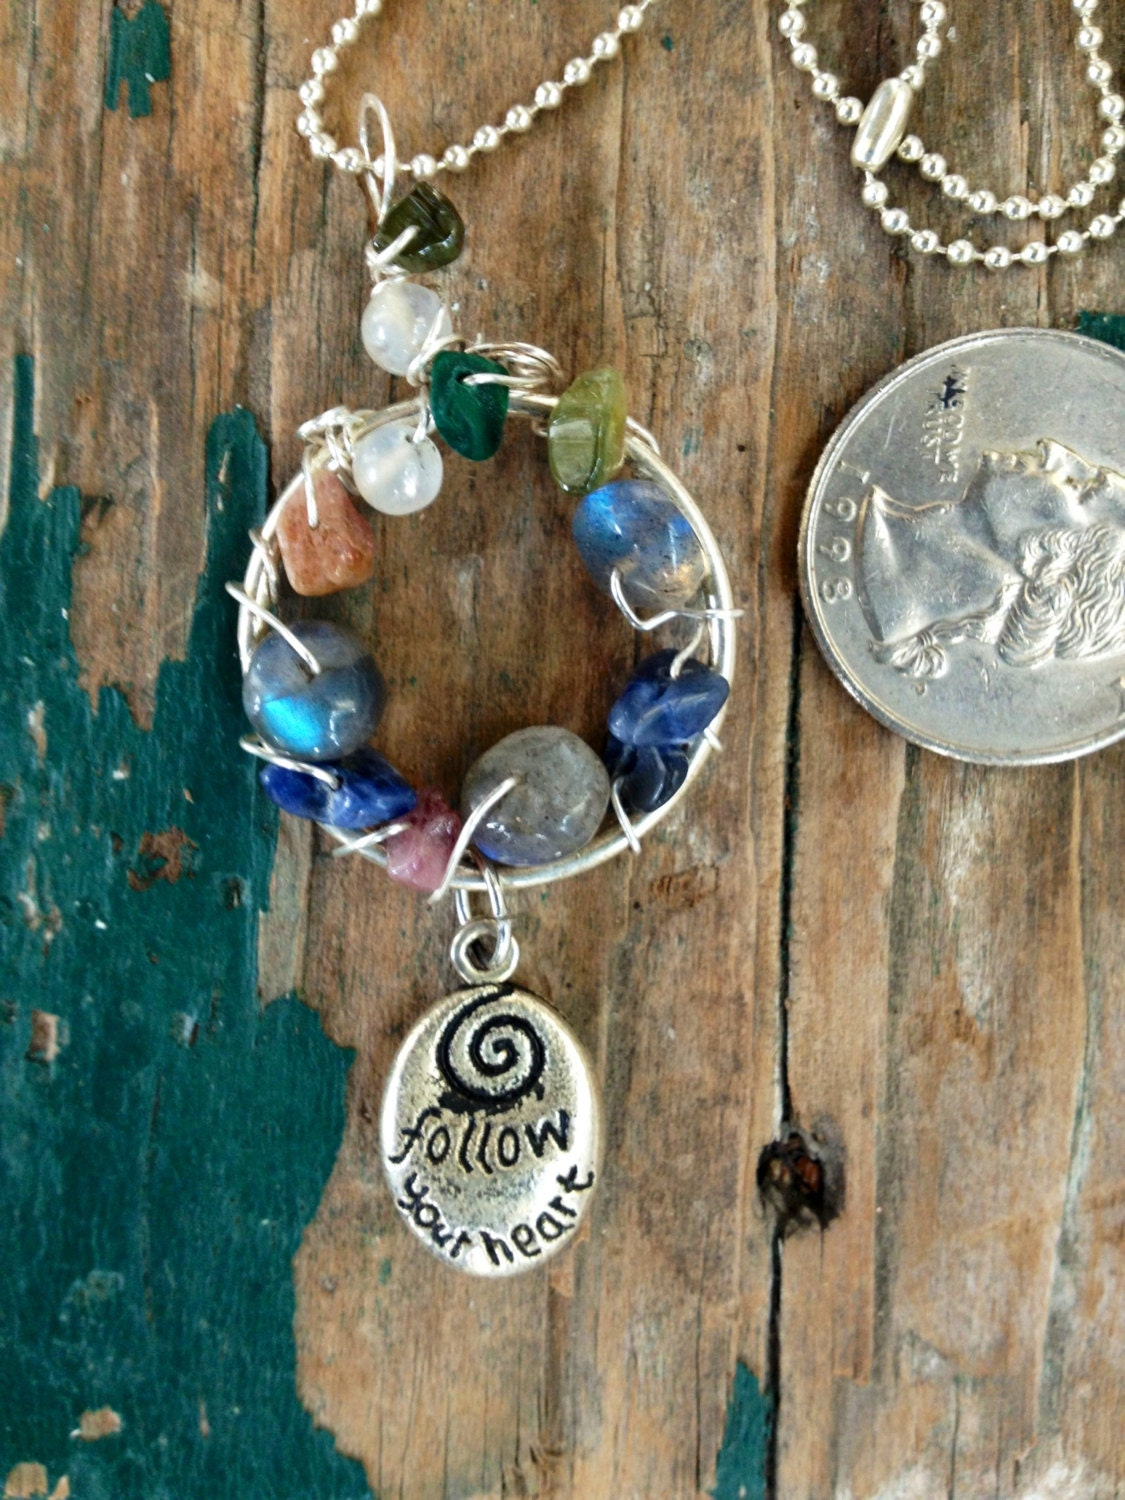 Healing Stones Inspirational Necklace on Life Cycle Of A Erfly